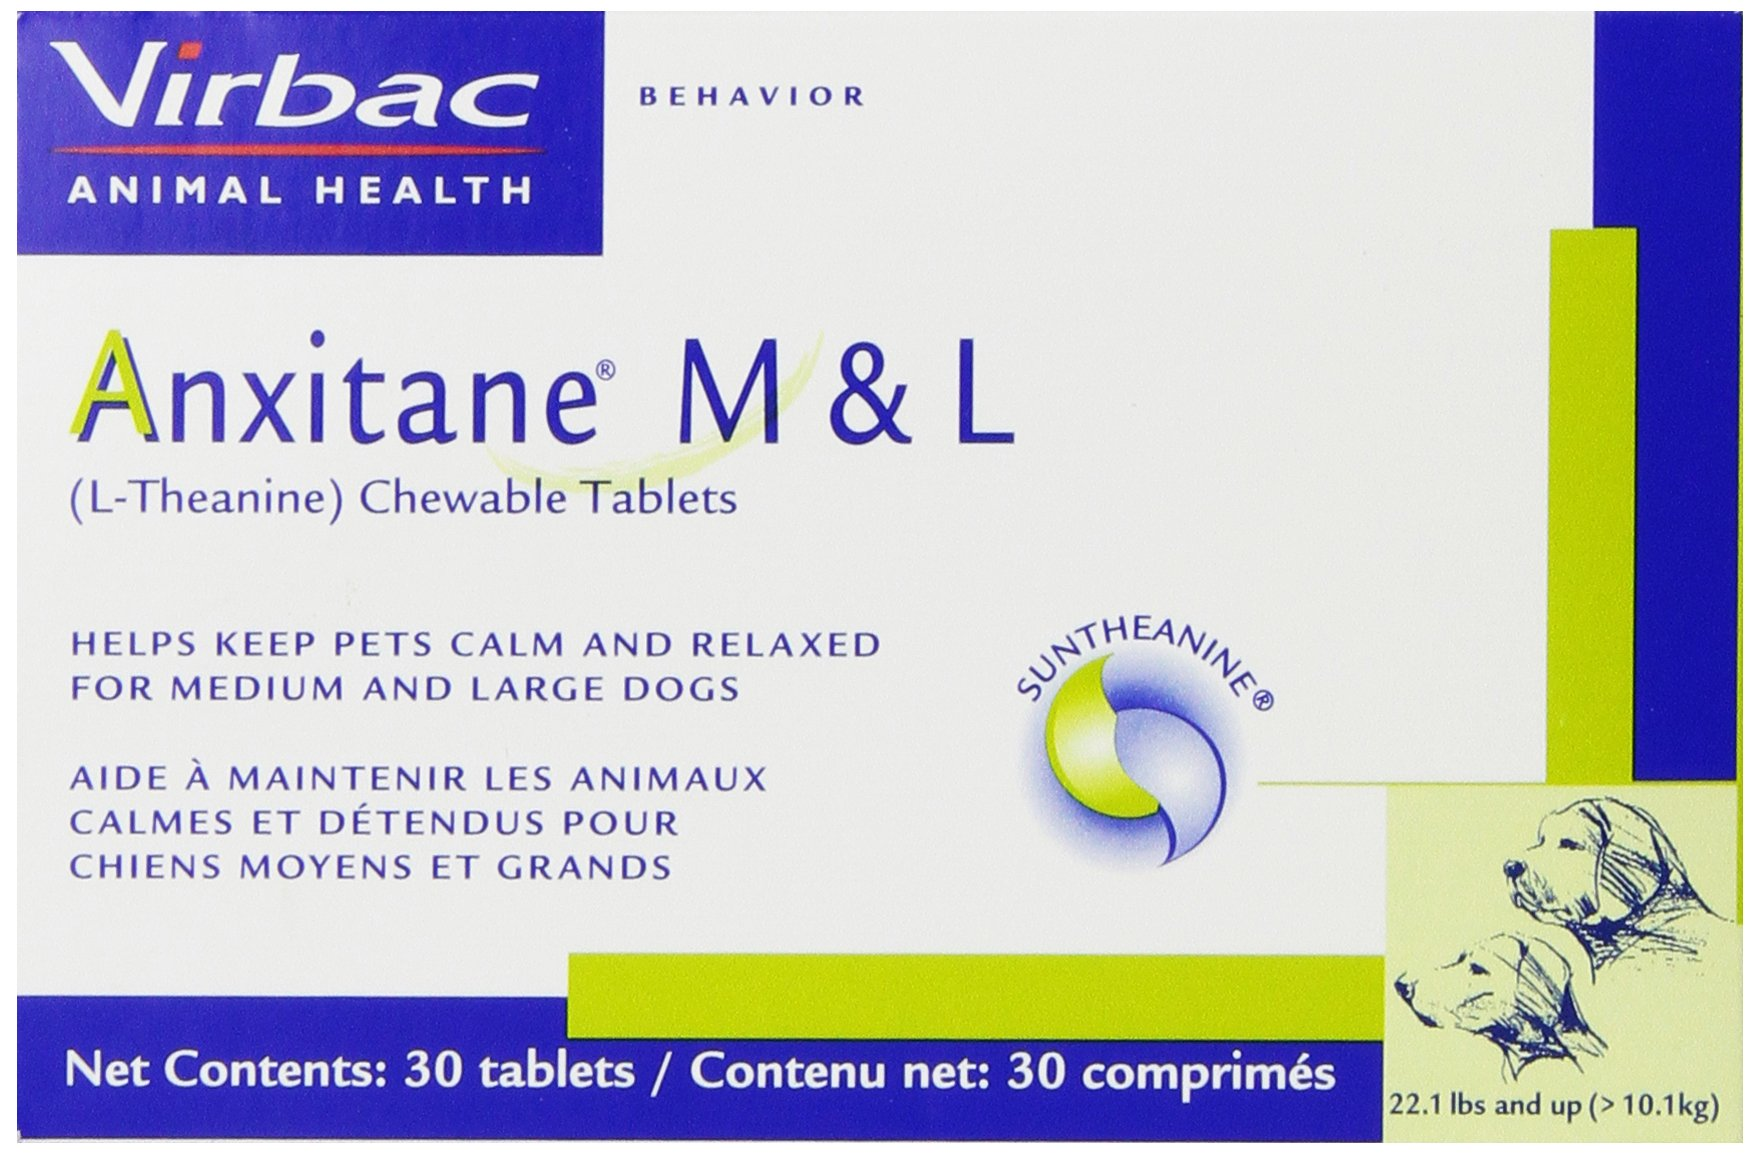 Virbac Anxitane Tablets Under 22 lb